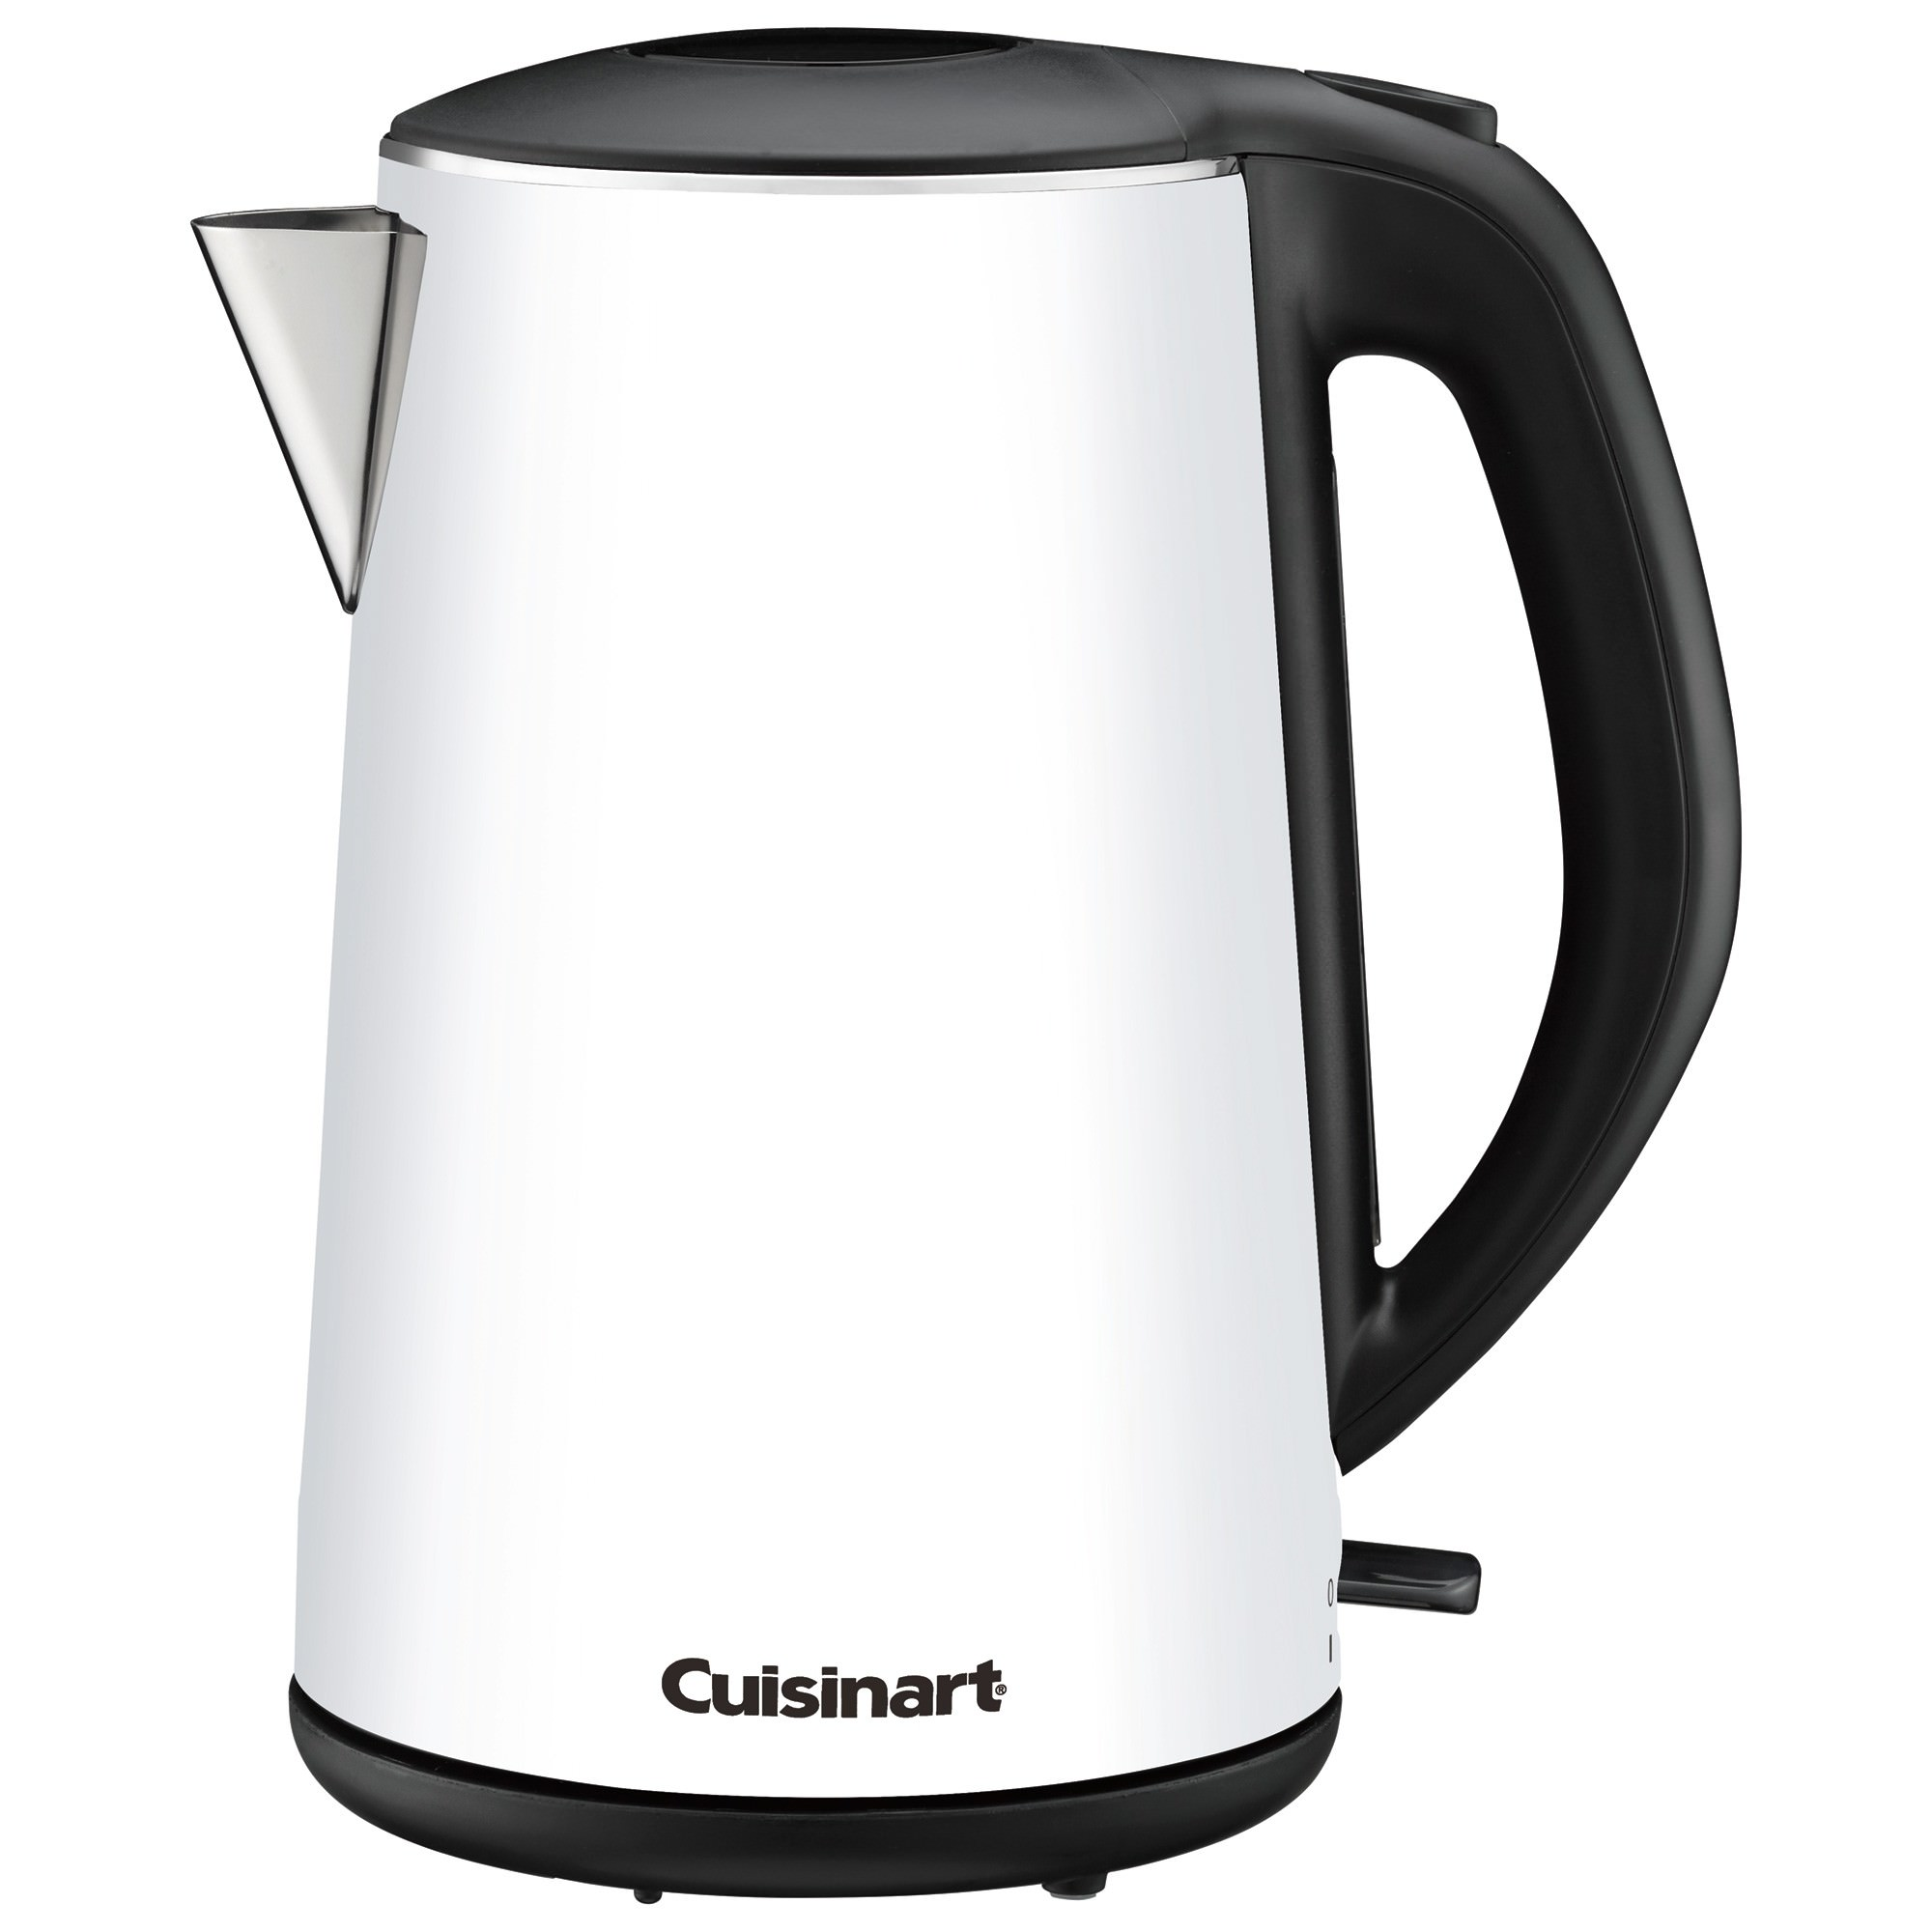 Cuisinart Cordless Electric Kettle - White